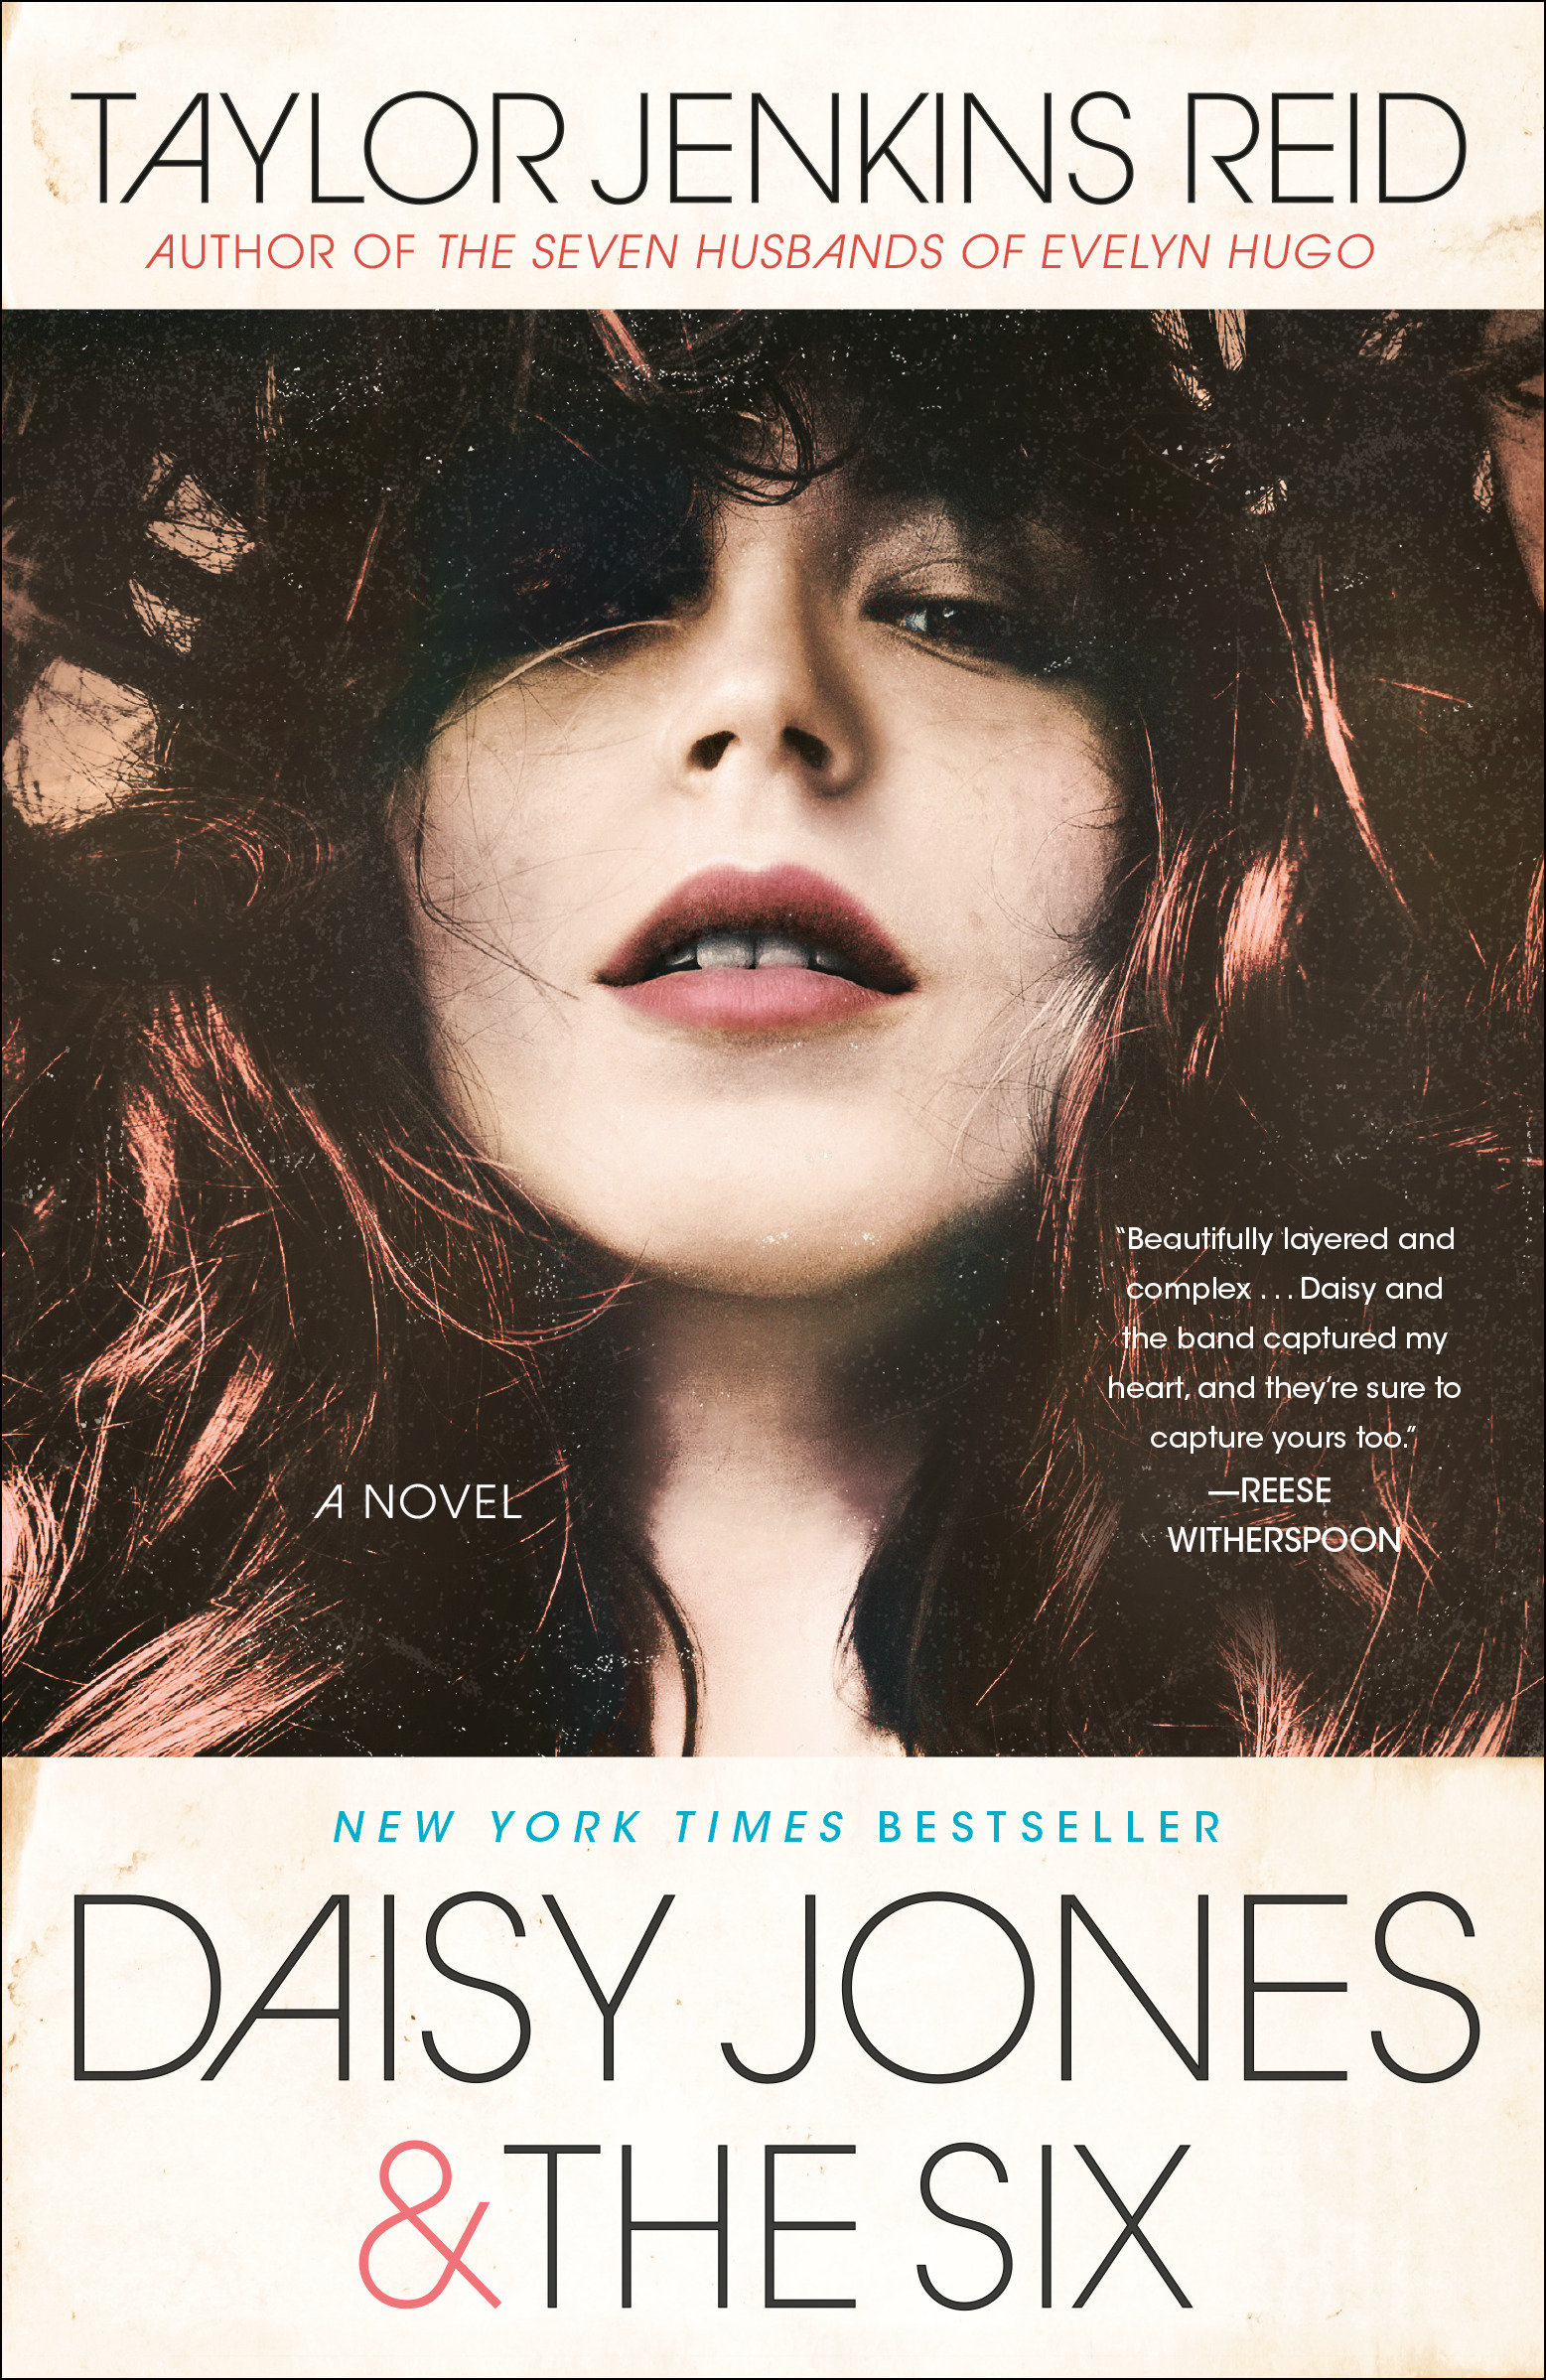 Daisy Jones & The Six A Novel